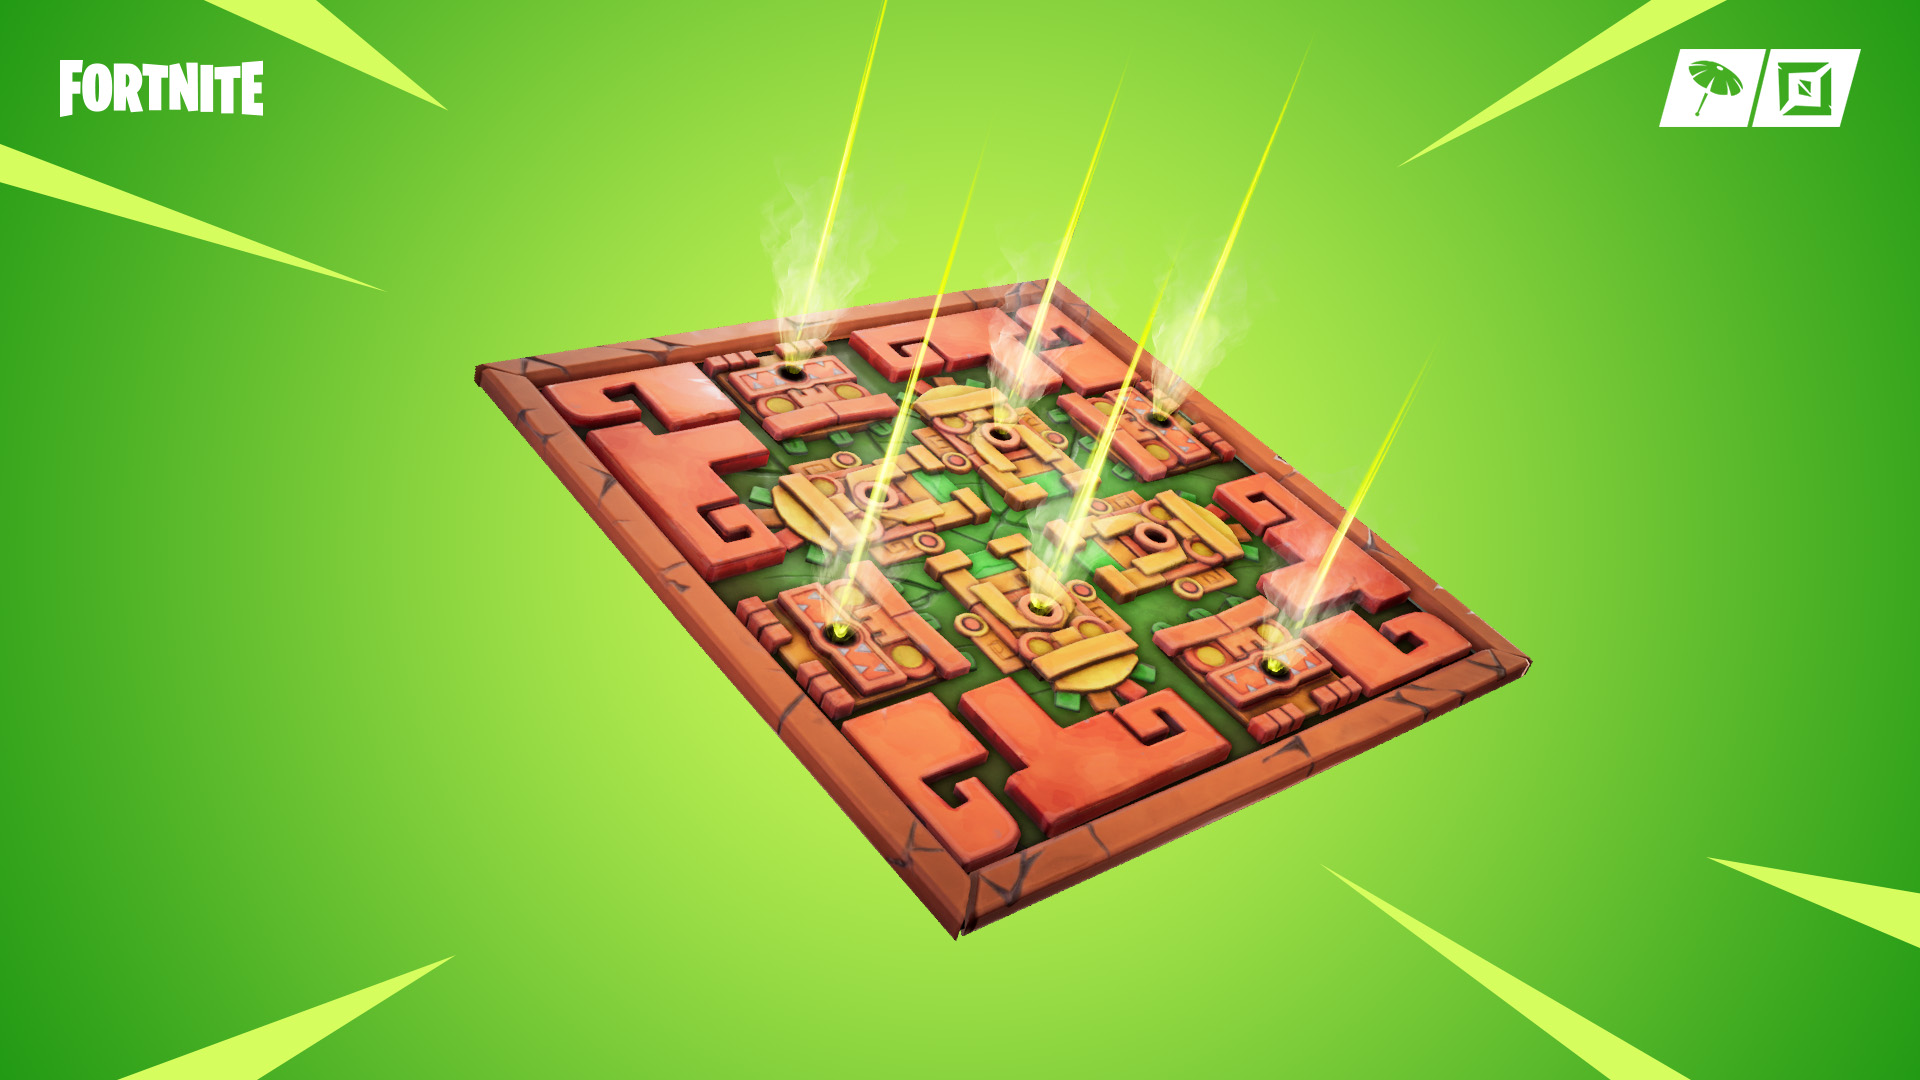 fortnite s v8 20 patch notes reveal poison traps new foraged items and more - more fortnite